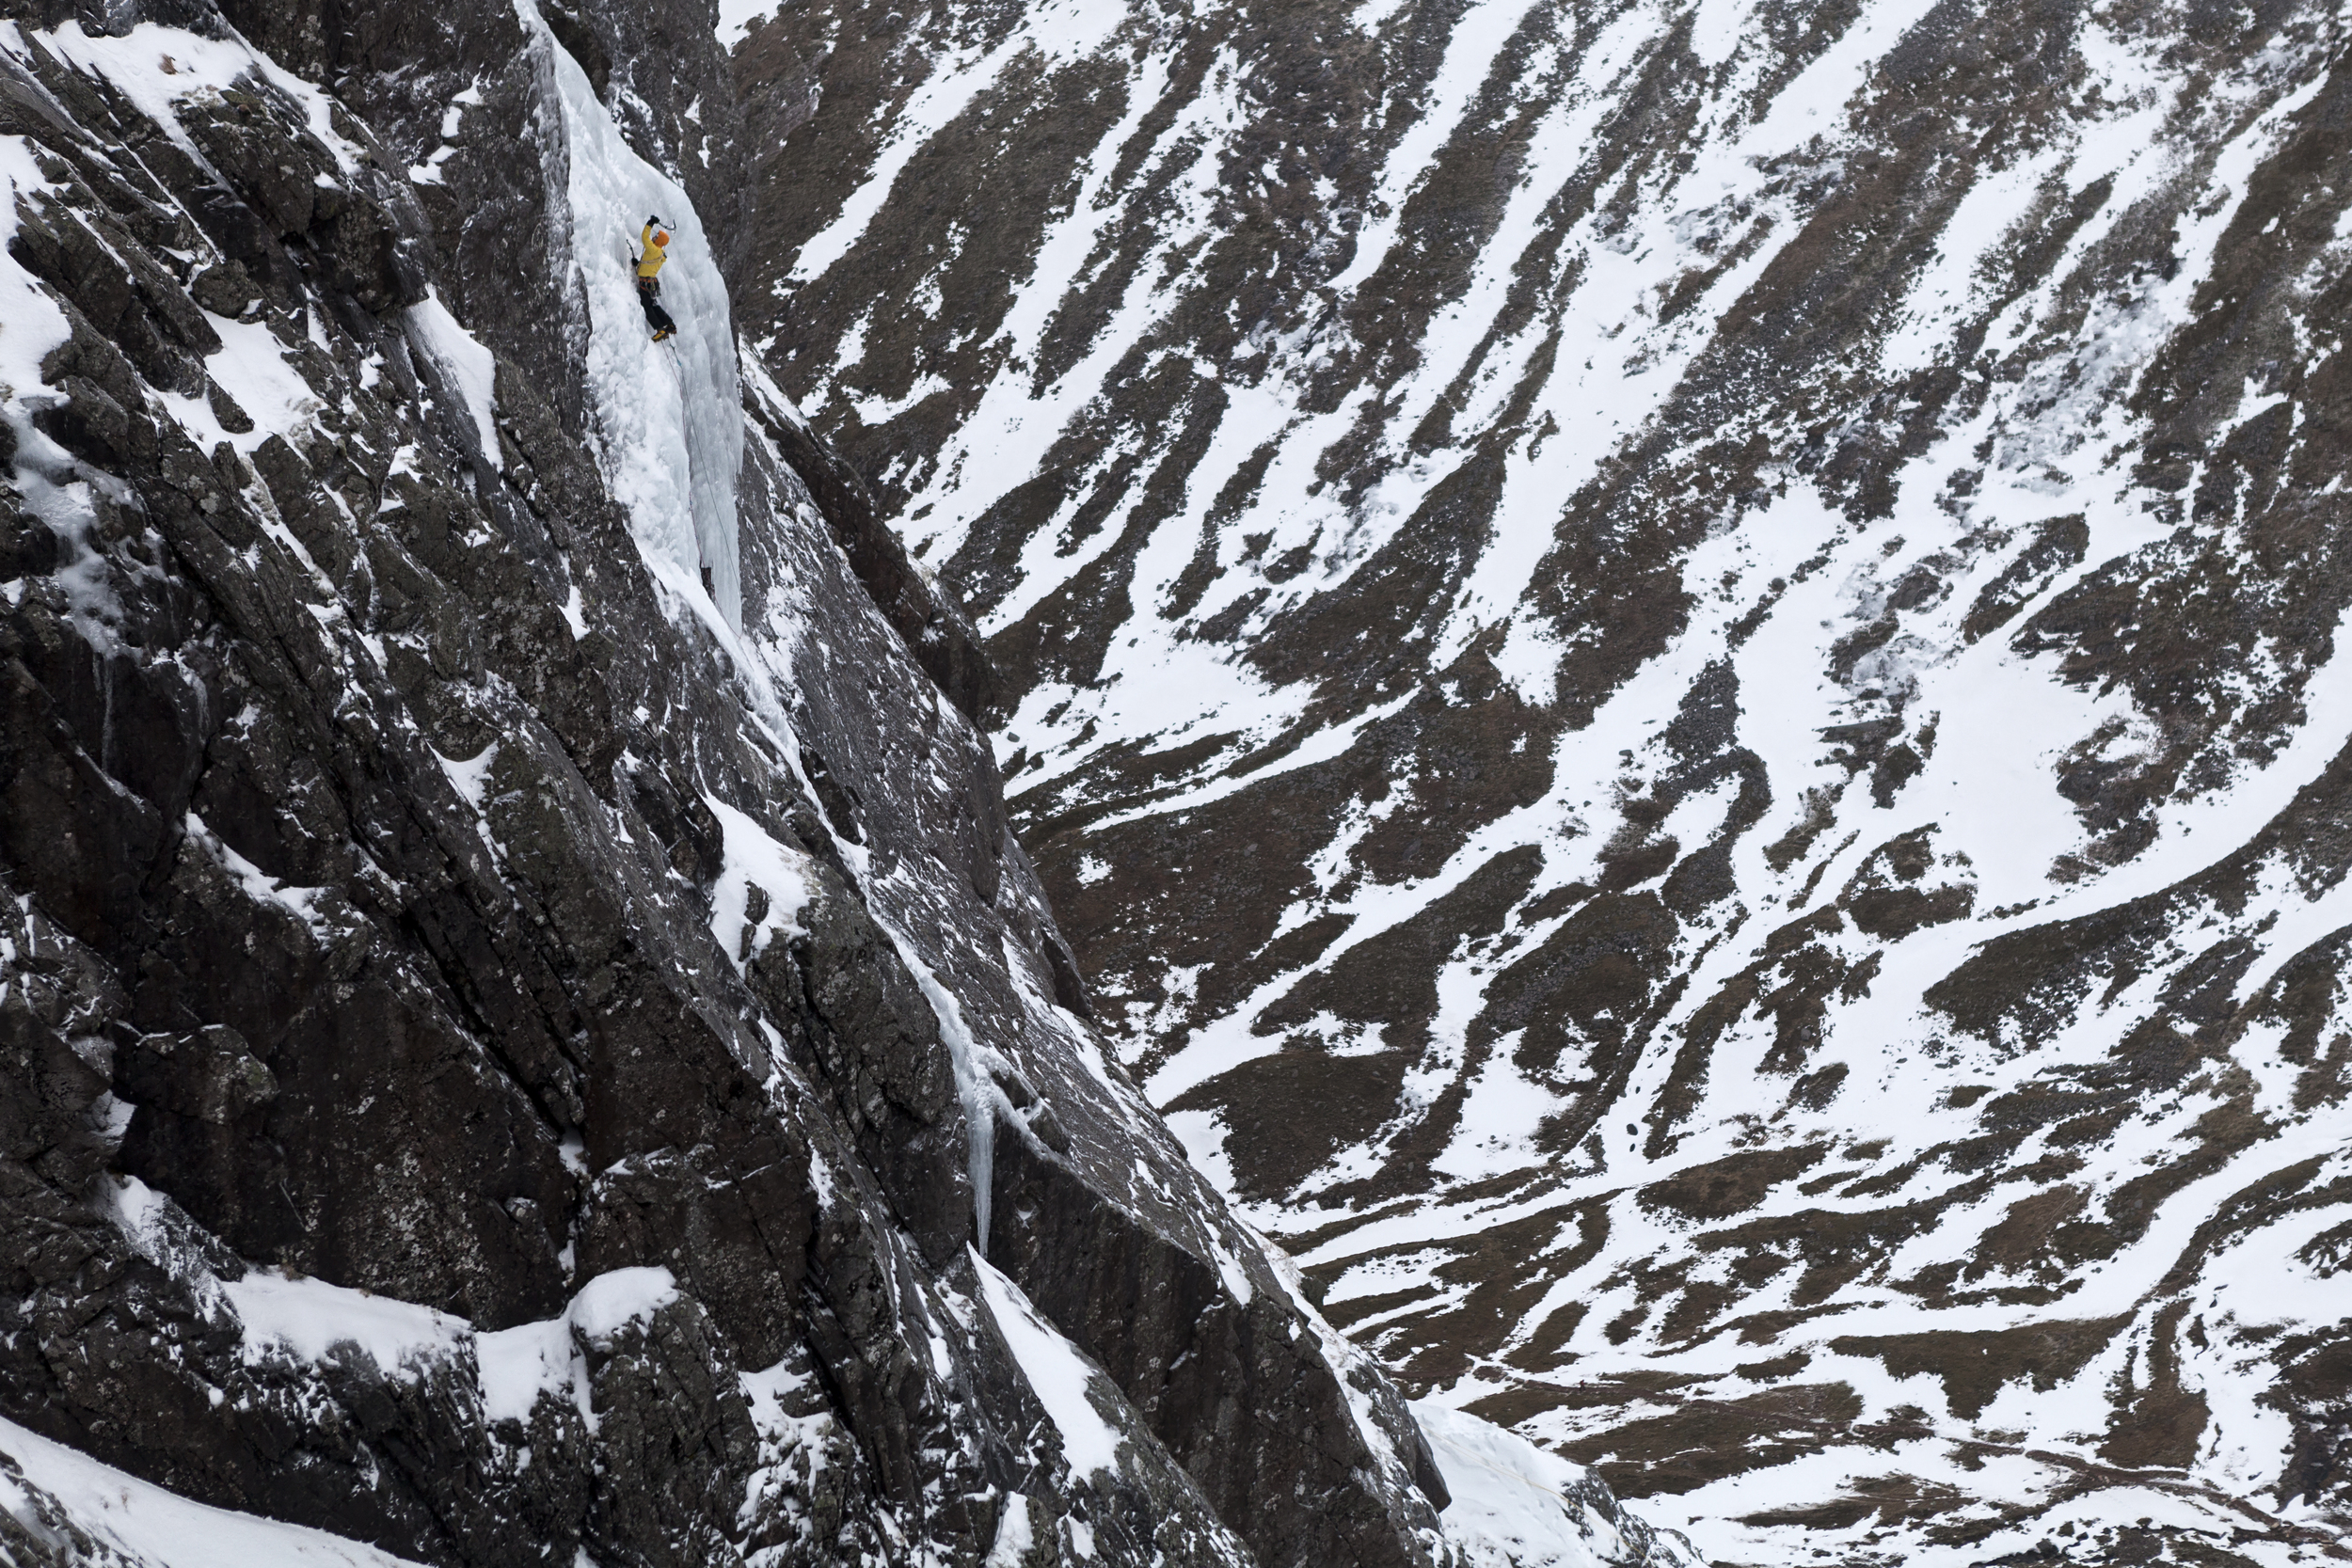 AndyCave climbing The Curtain on Ben Nevis Pic Hot Aches Productions - Matt Pycroft.jpg